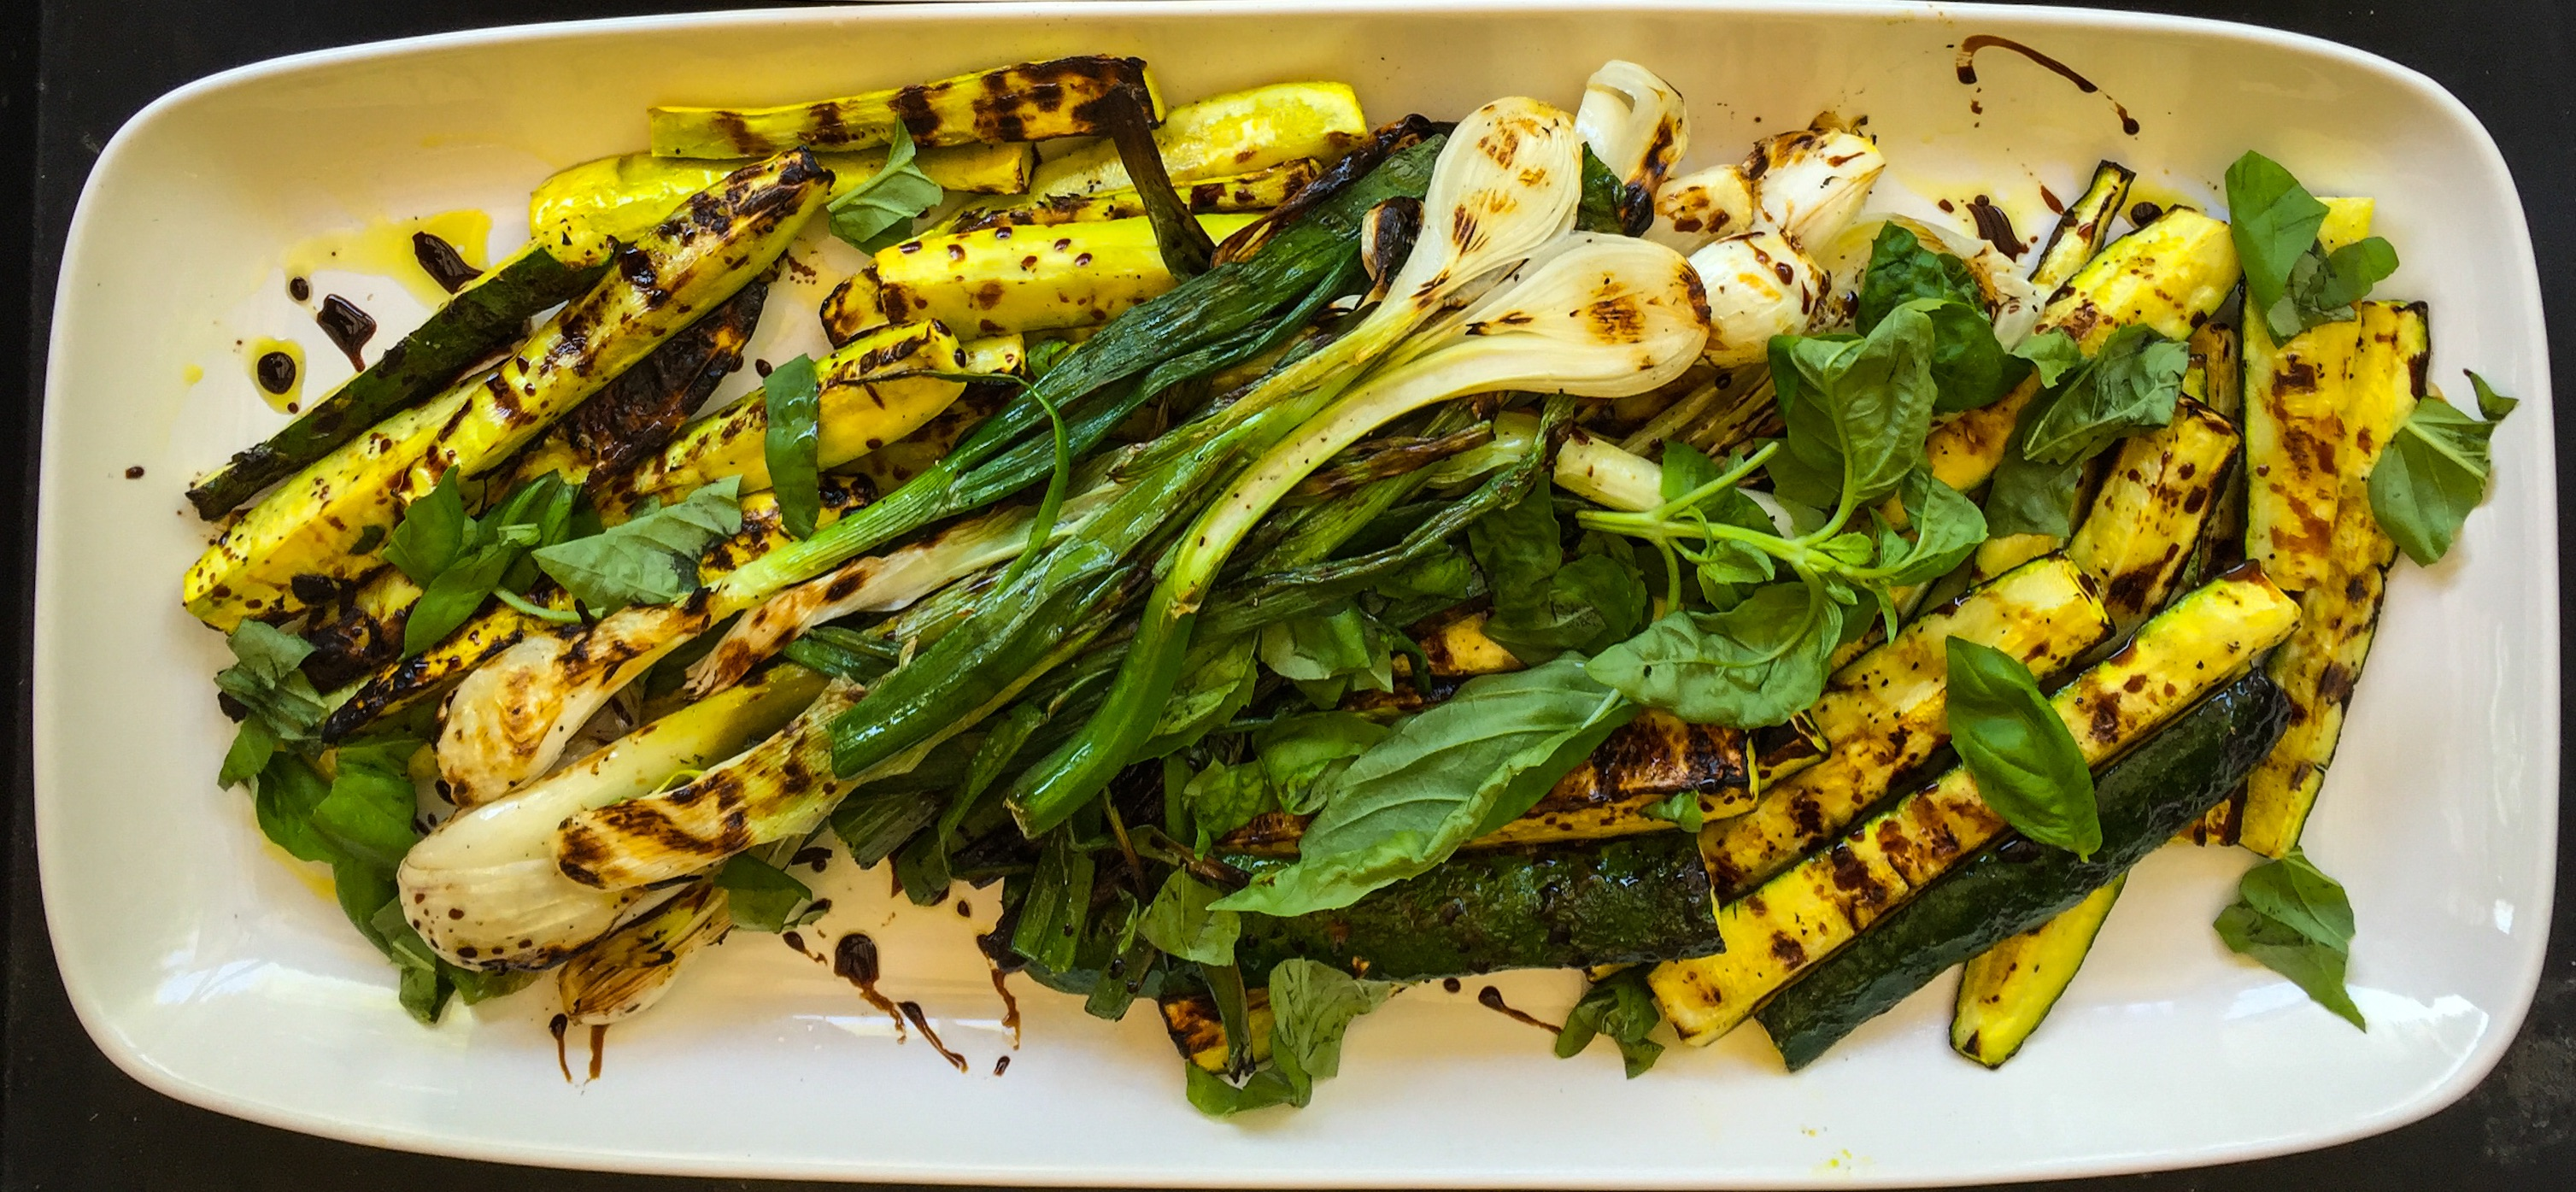 What a beautiful platter of fresh local grilled vegetables!